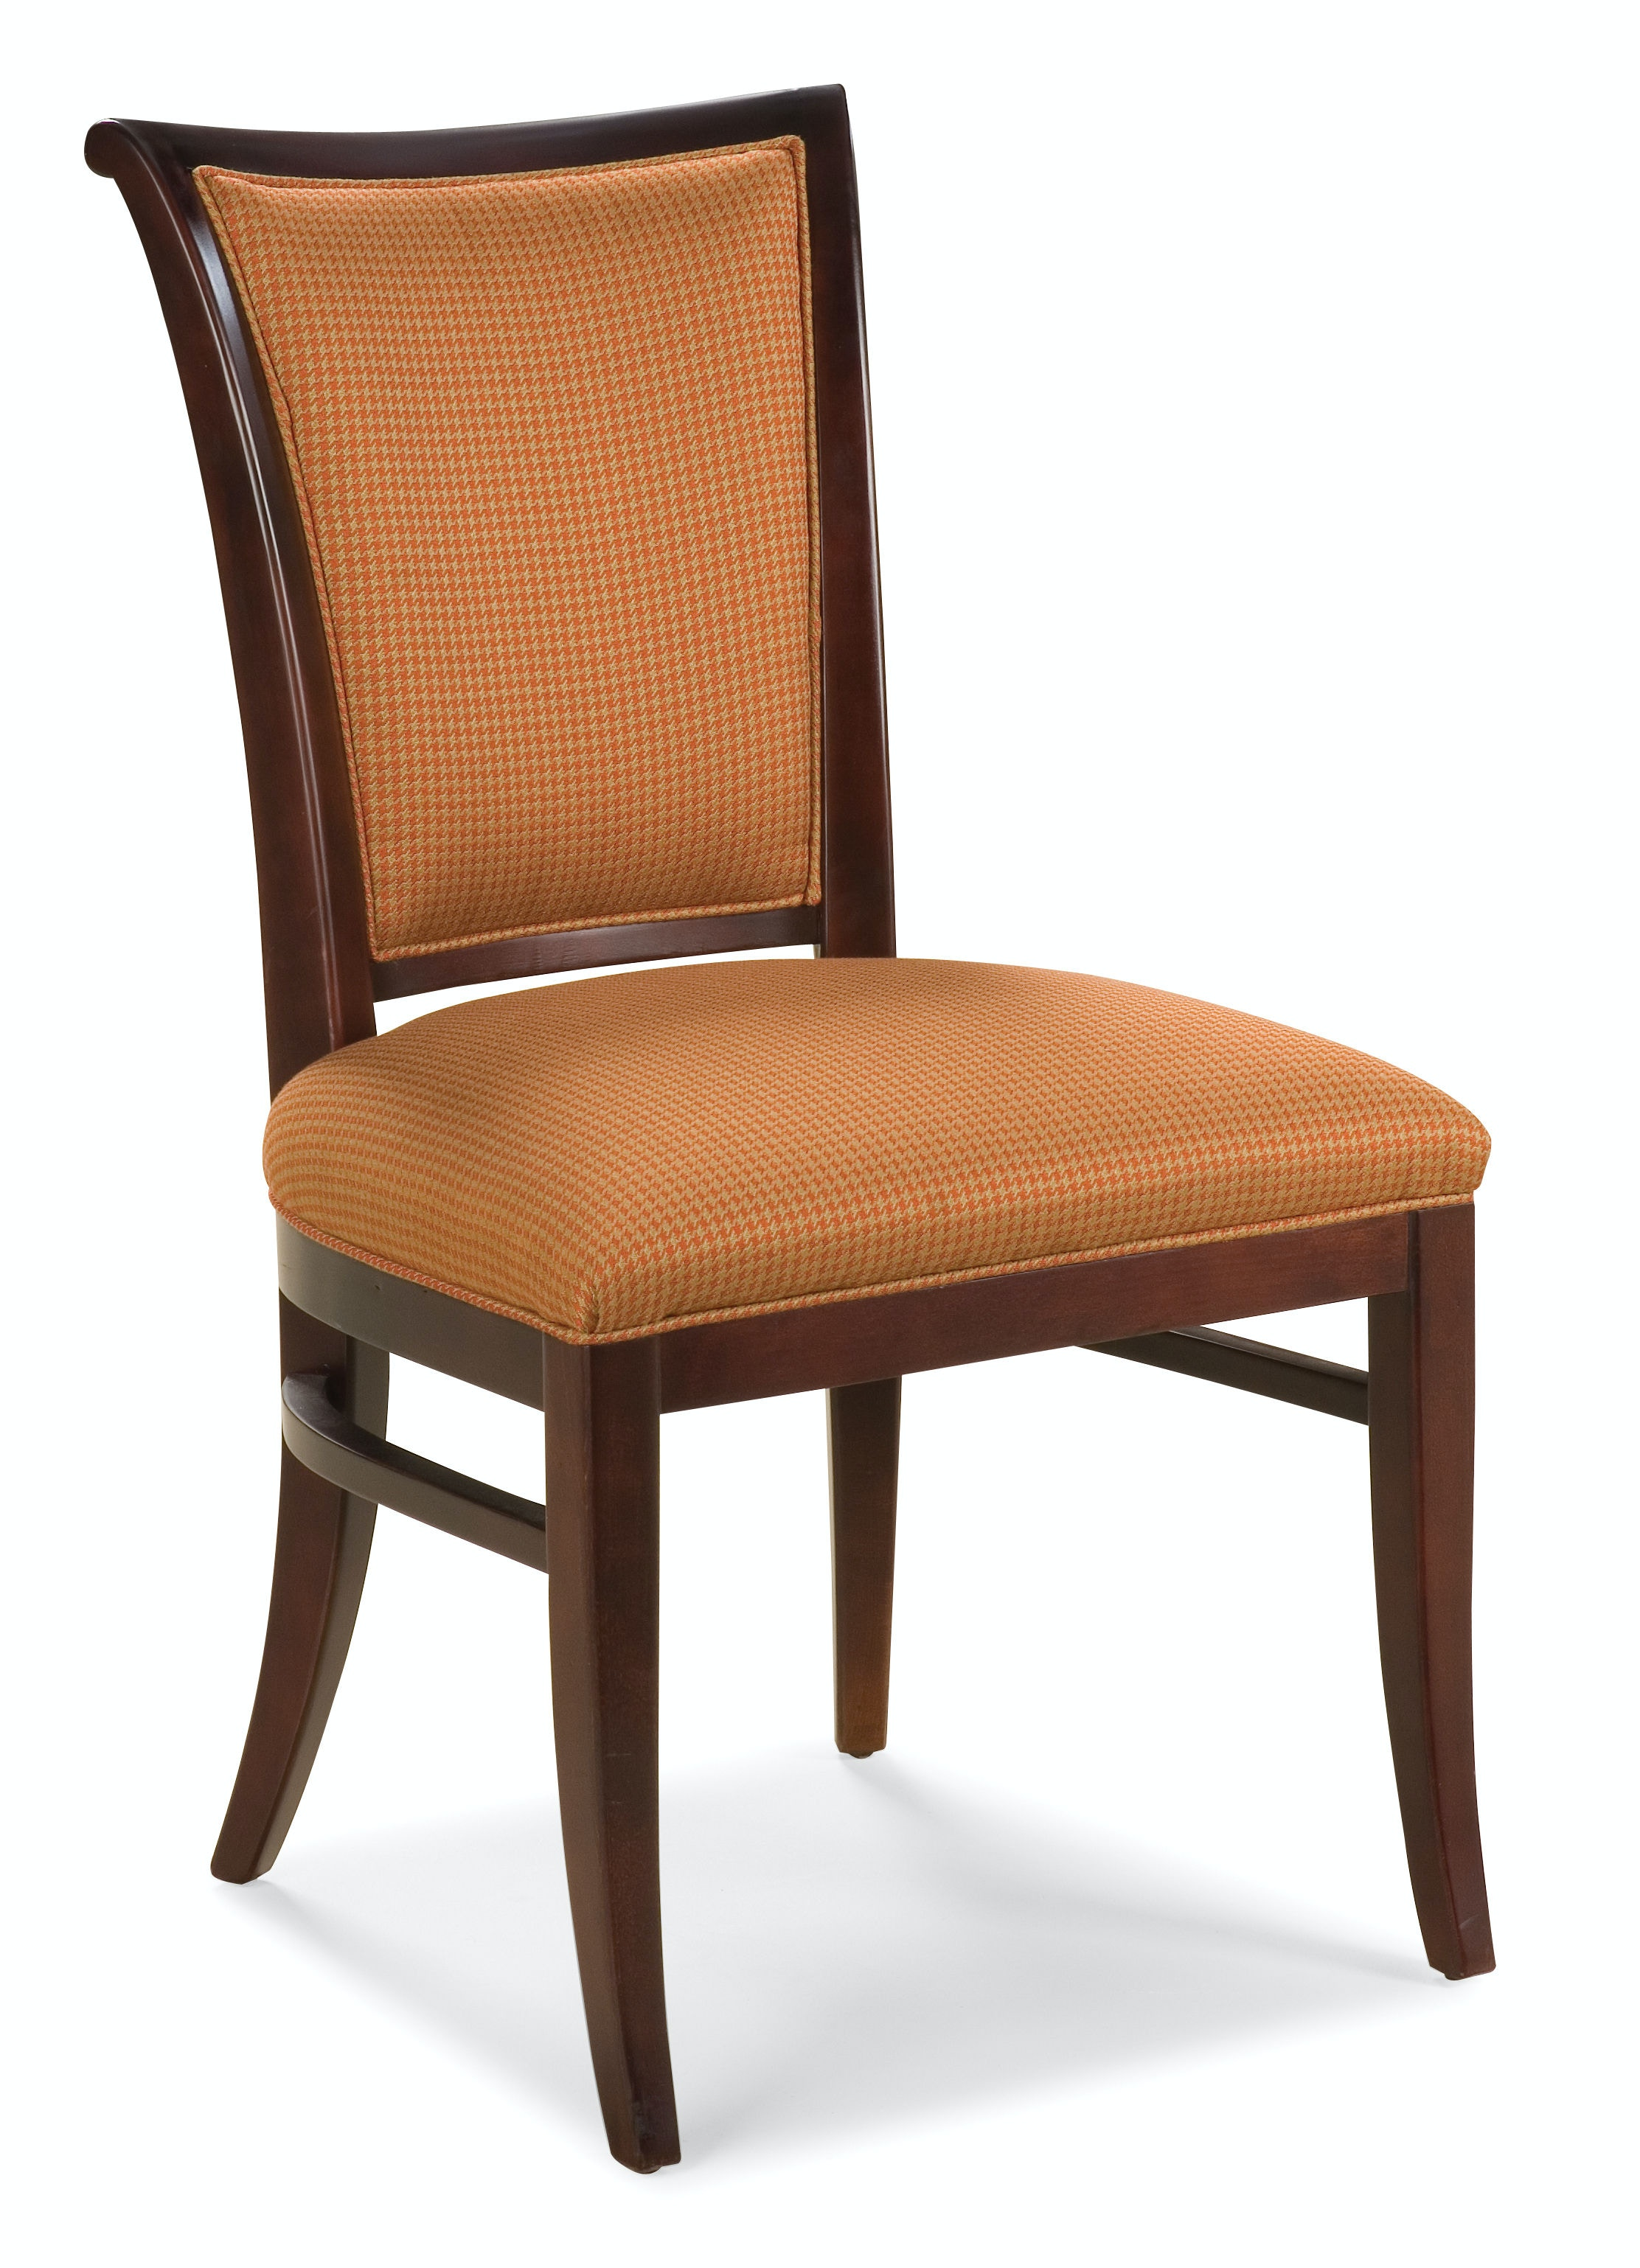 Fairfield Chair pany Dining Room Occasional Side Chair